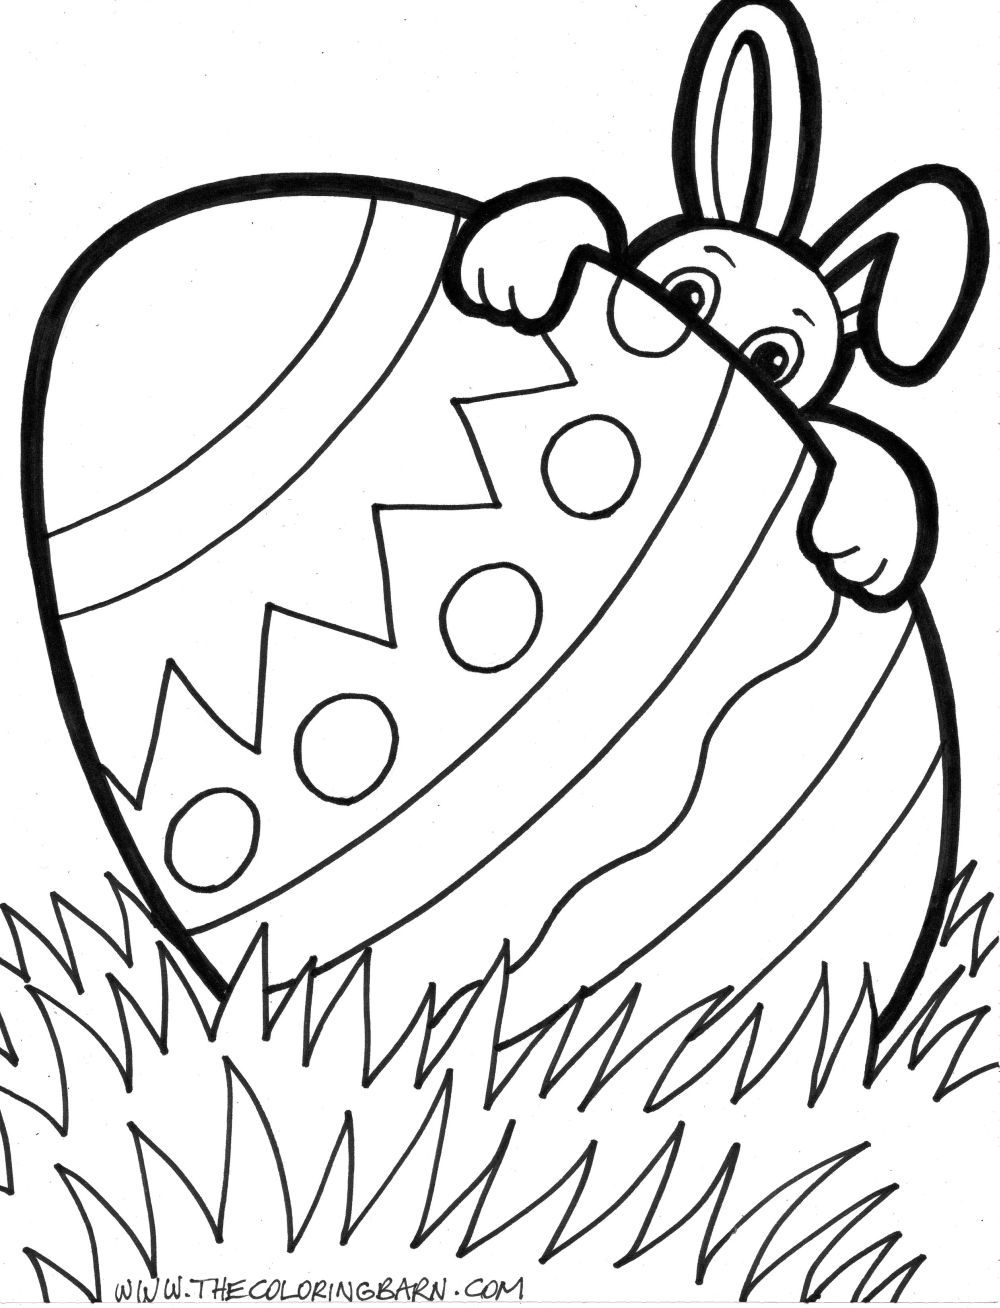 Easter Coloring Pages Easter Coloring Pages Printable Easter Bunny Colouring Bunny Coloring Pages